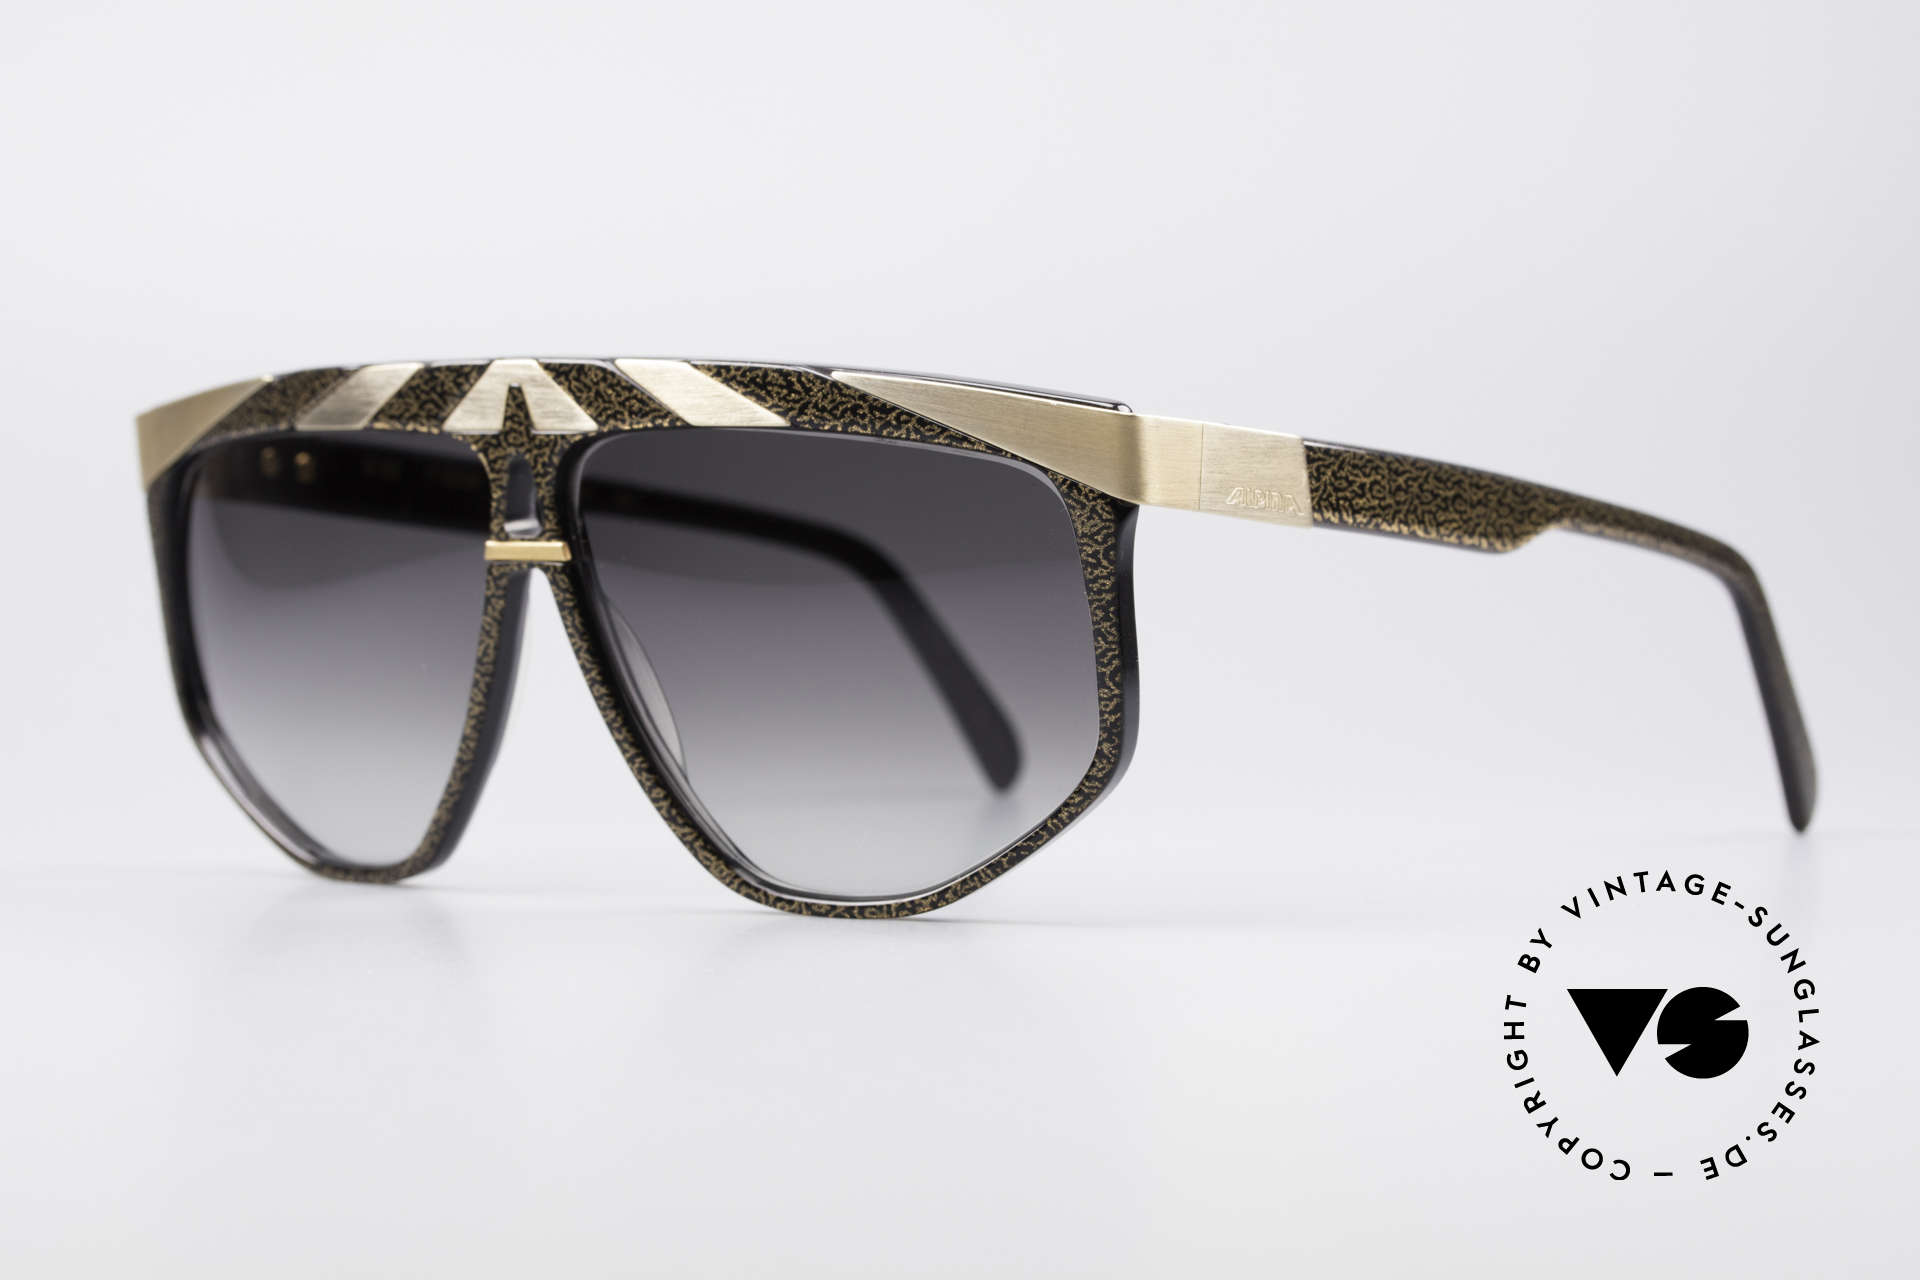 Alpina G82 No Retro Sunglasses Old 80's, rare original from the 80's (handmade in W.Germany), Made for Men and Women